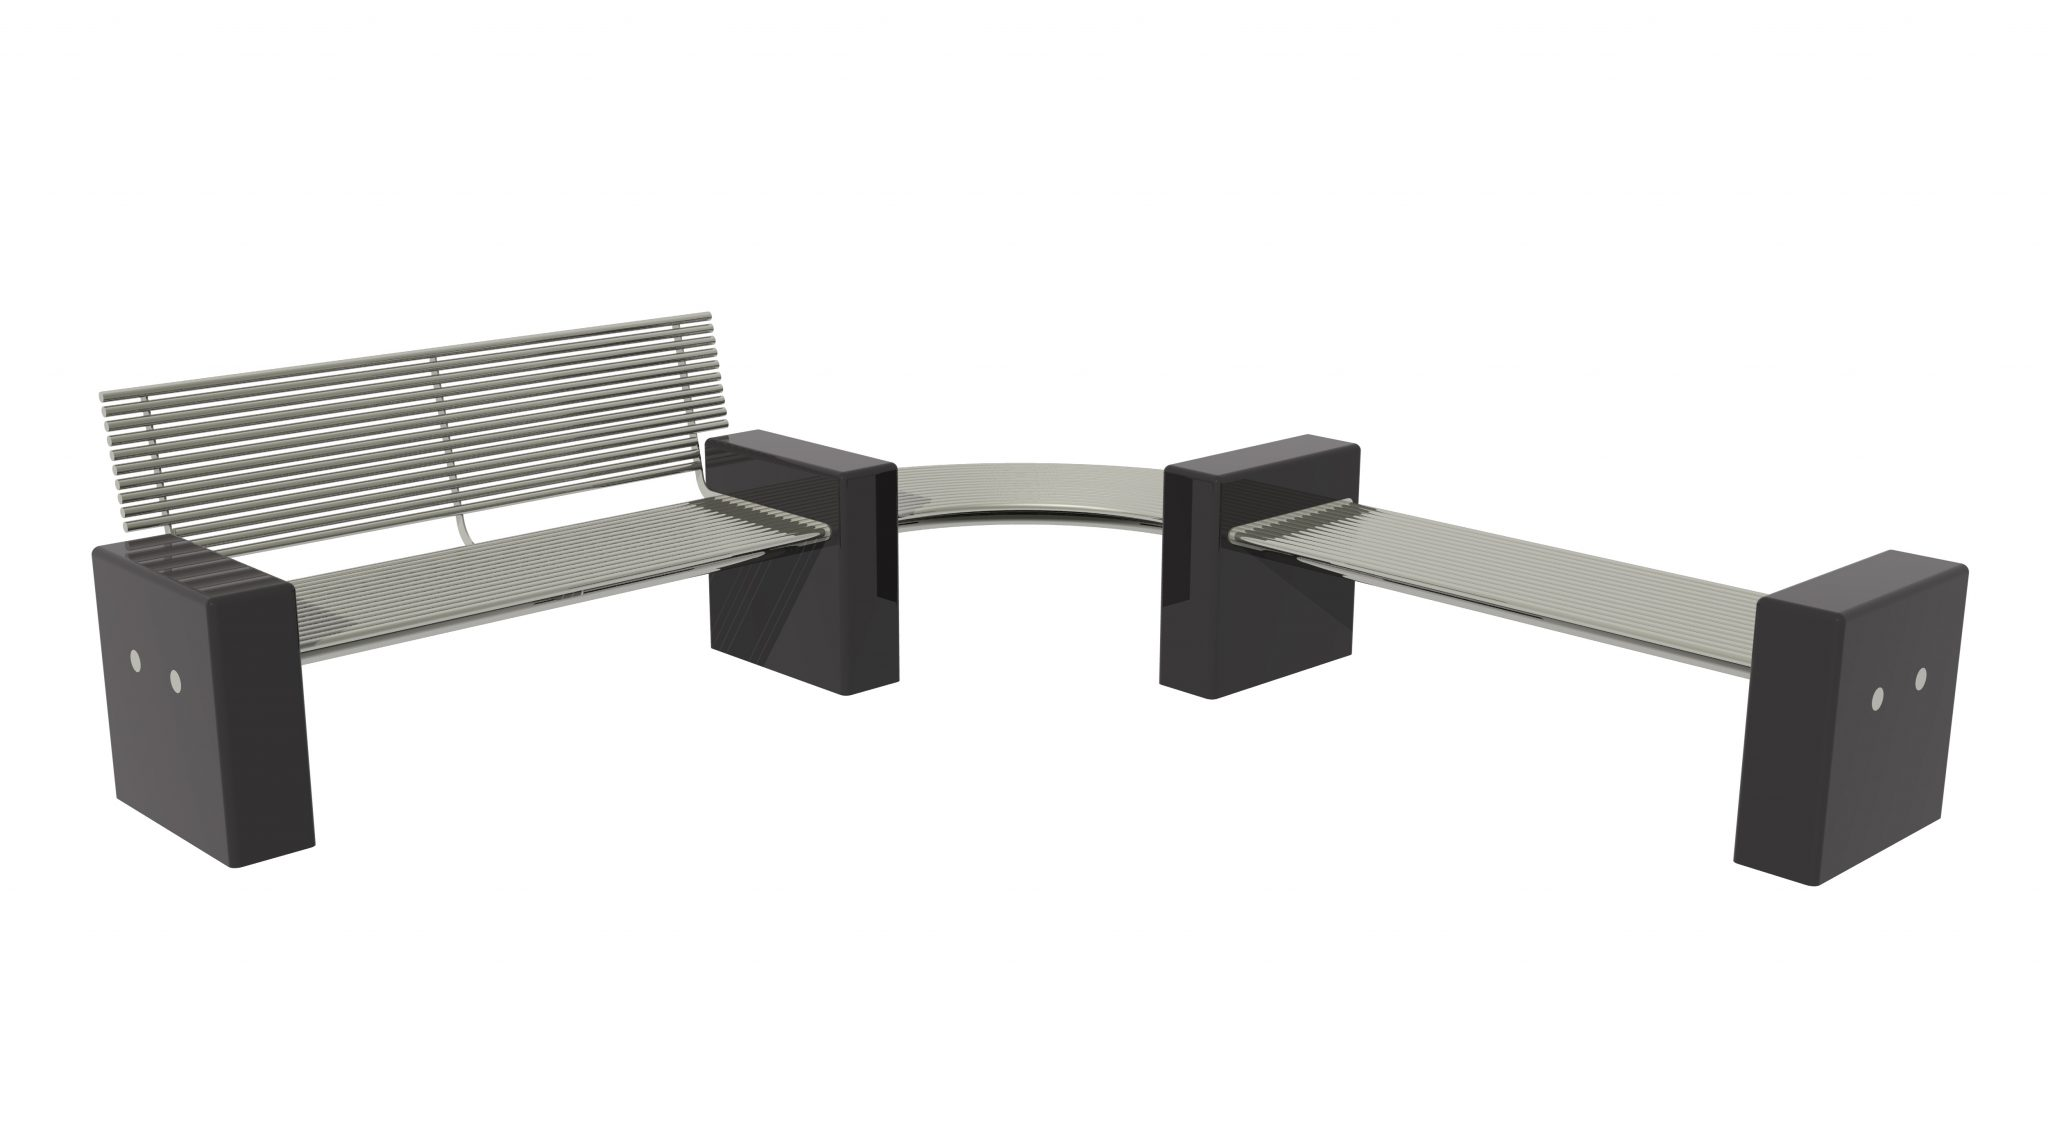 Plaza PL003 seat and PL005 stainless steel street furniture